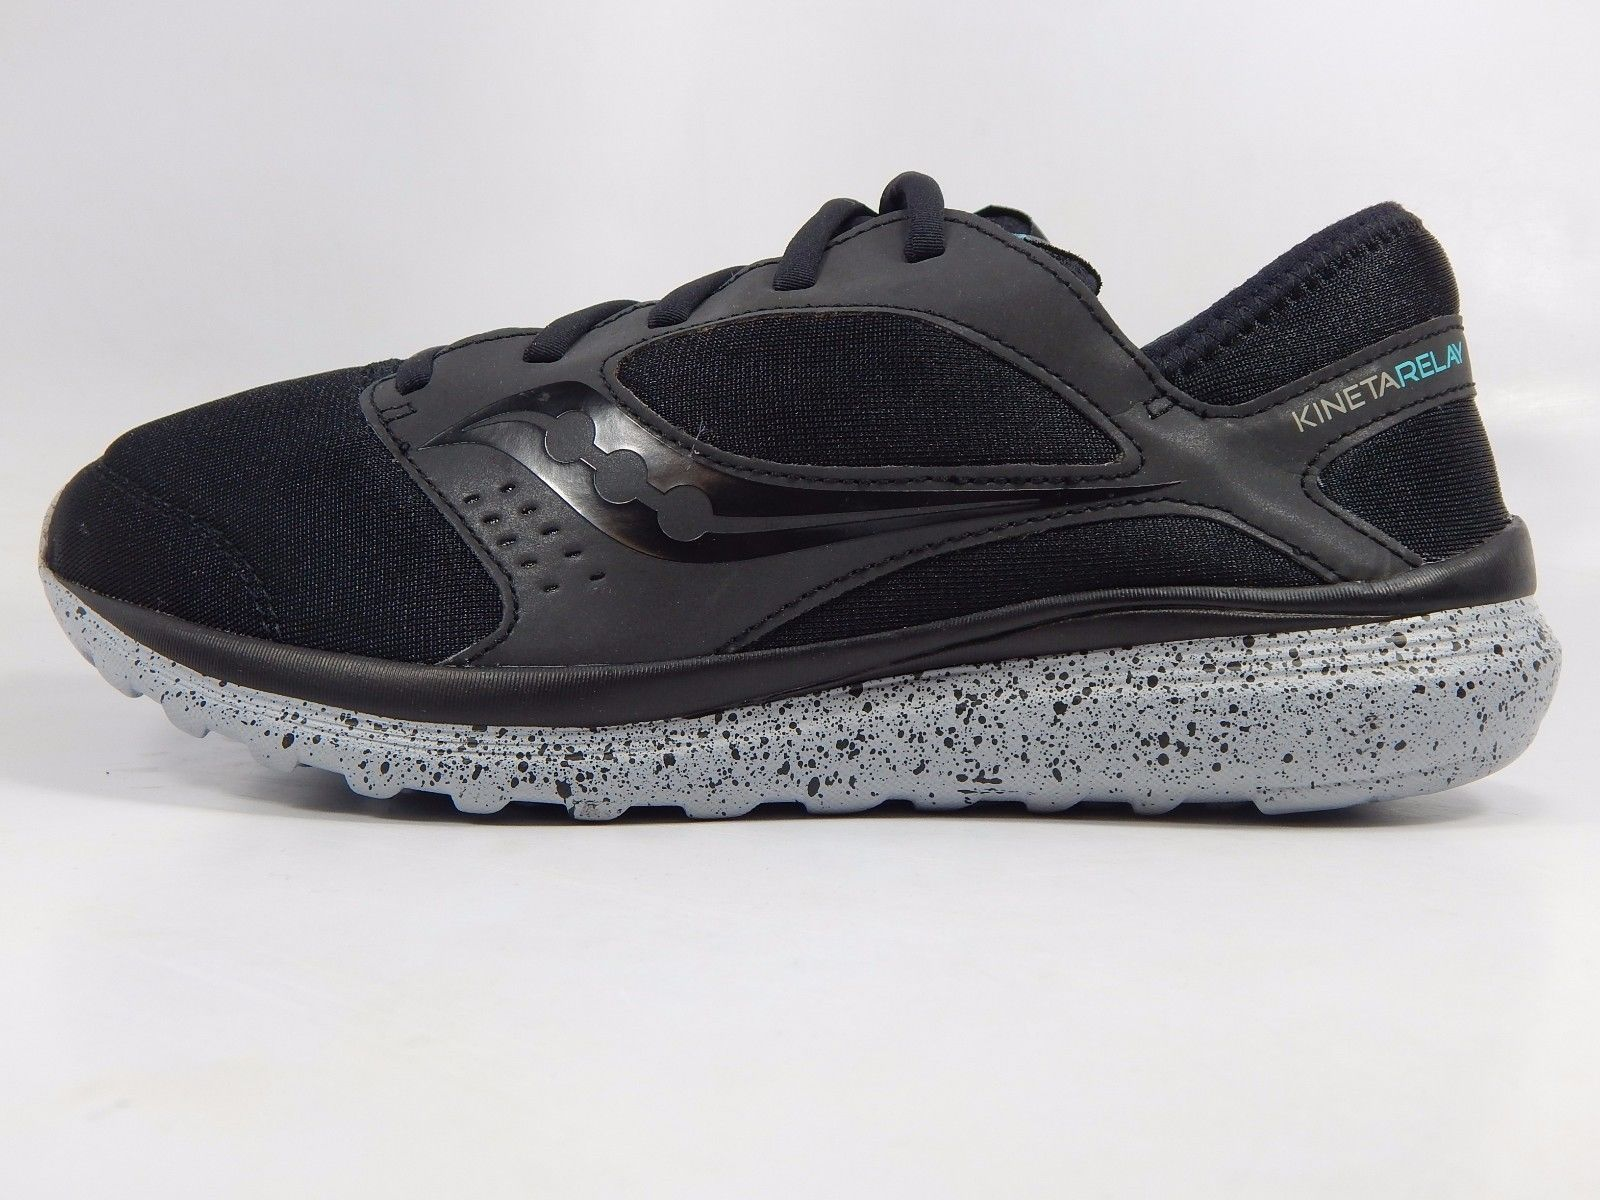 Saucony Kineta Relay LR Men's Running Shoes Sz US 9 M (D) EU 42.5 Black S25285-1